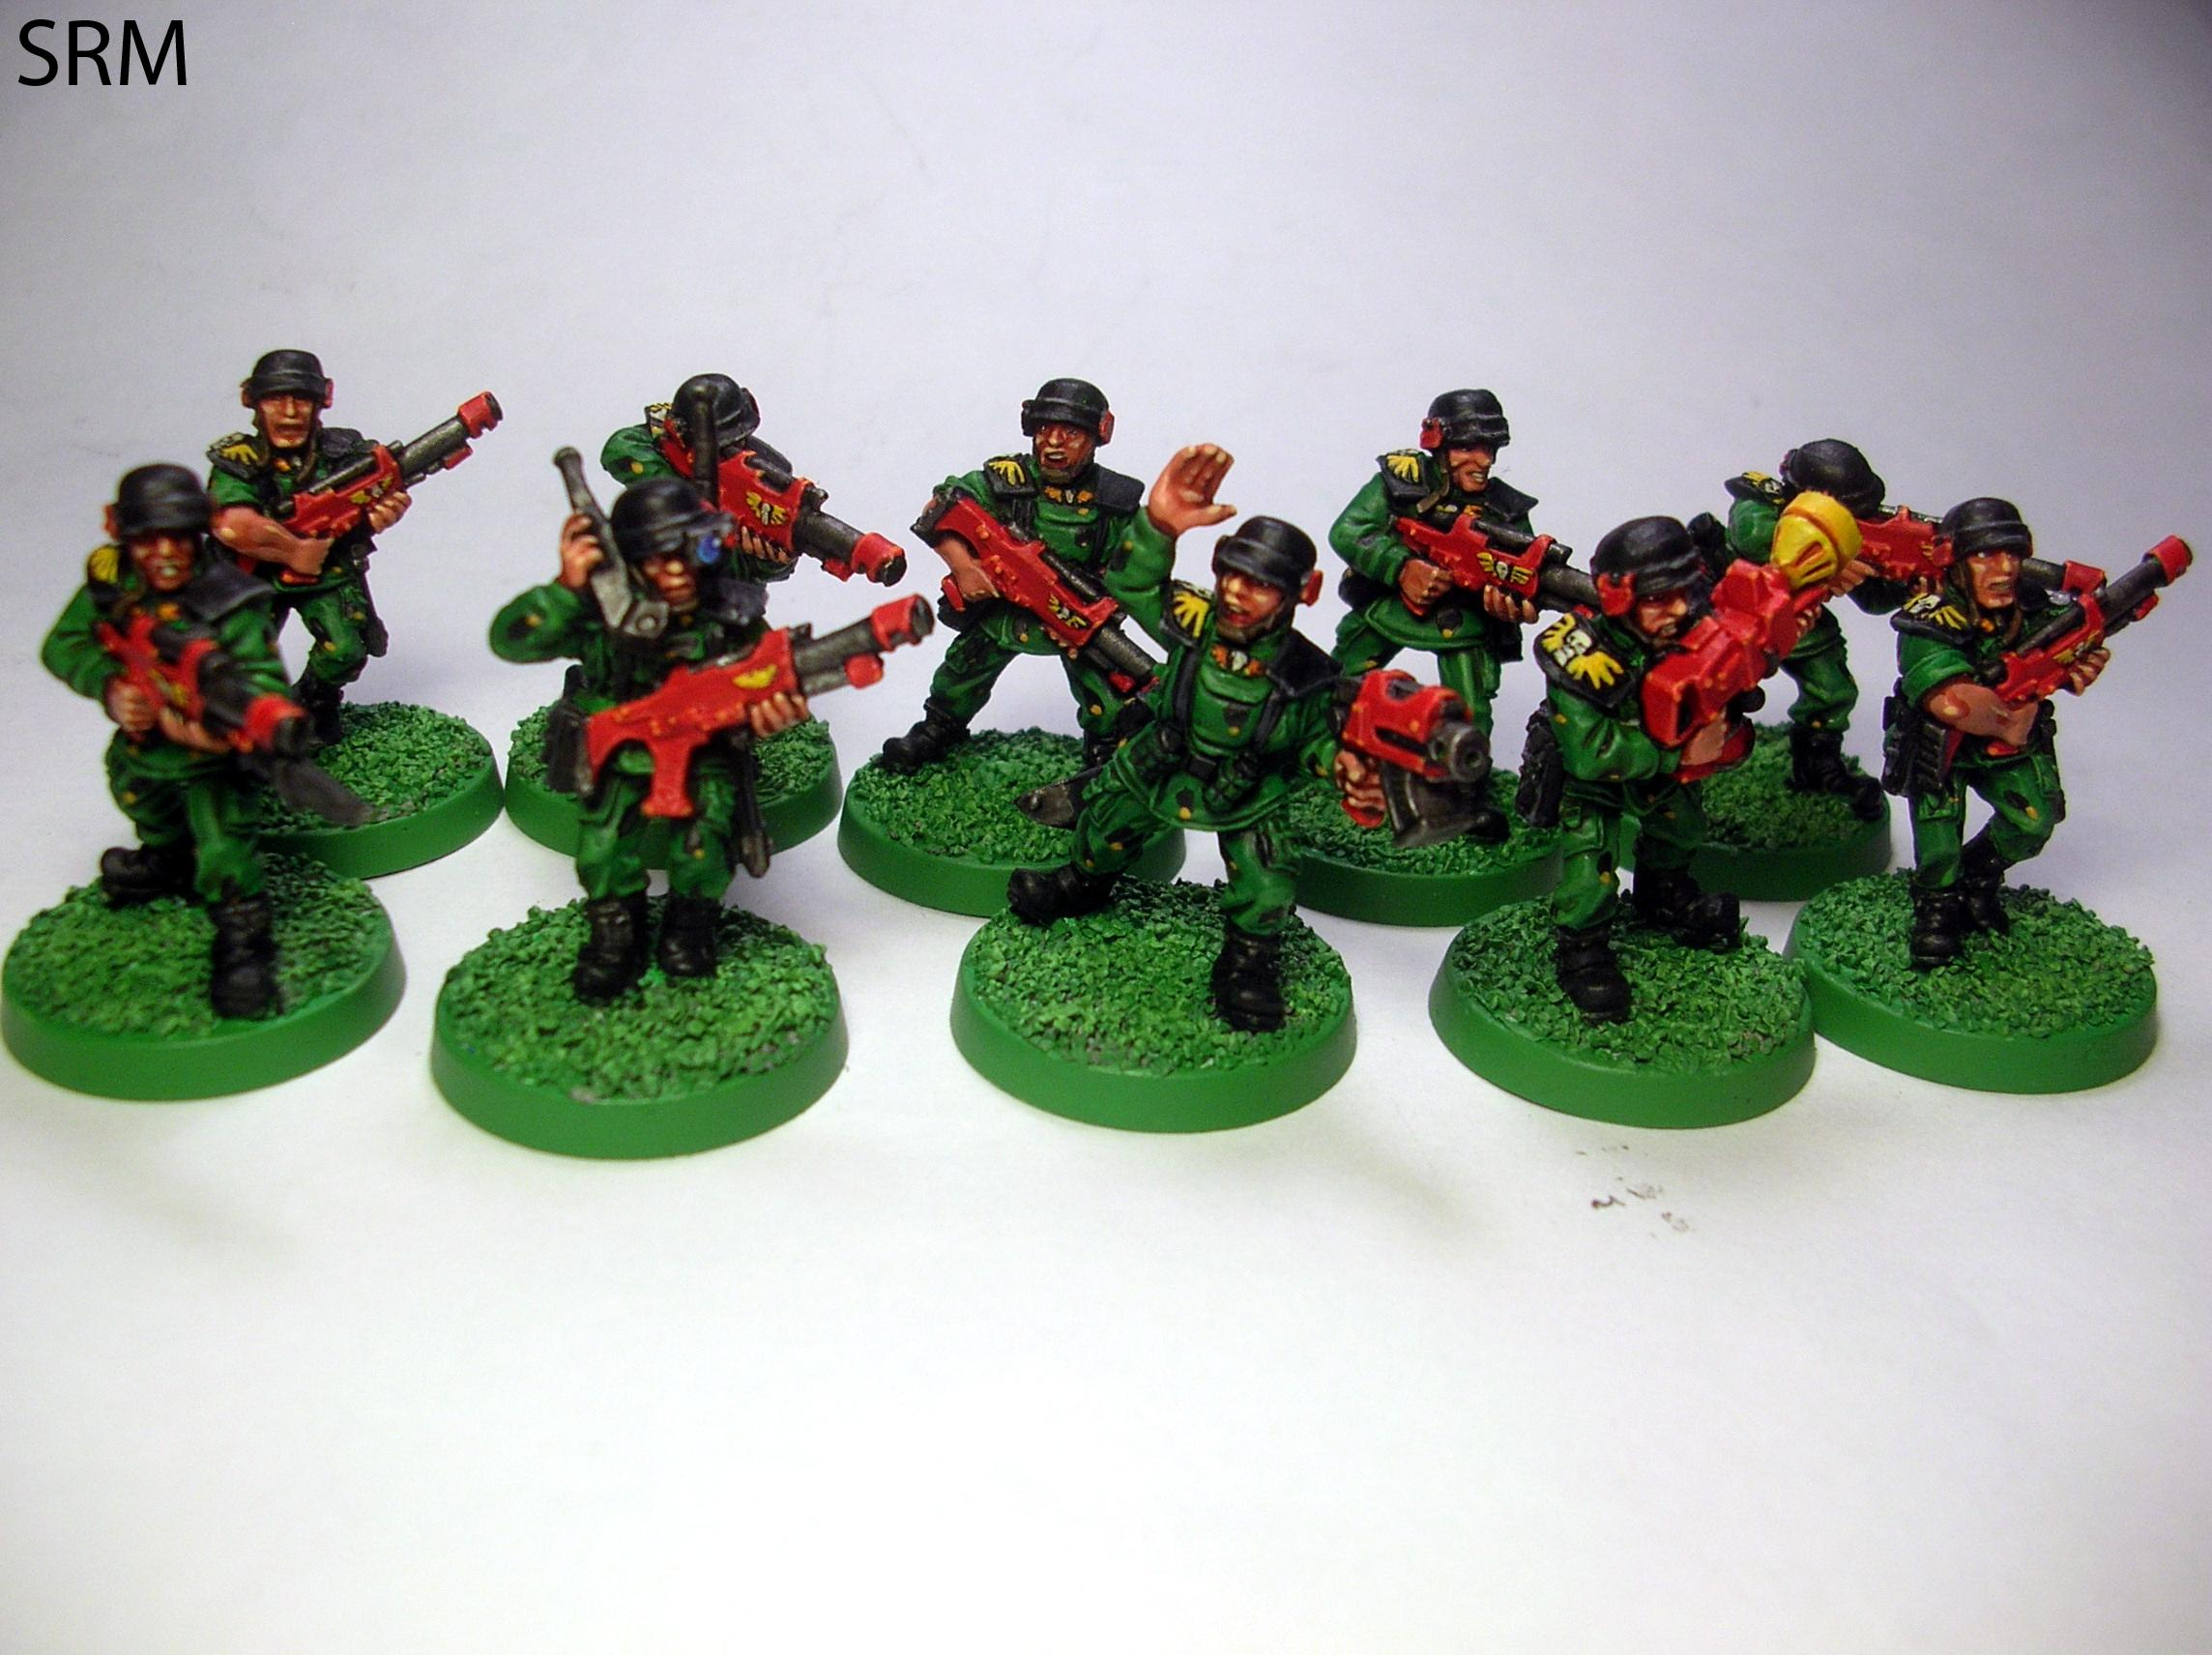 2nd Edition, Cadians, Out Of Production, Retro